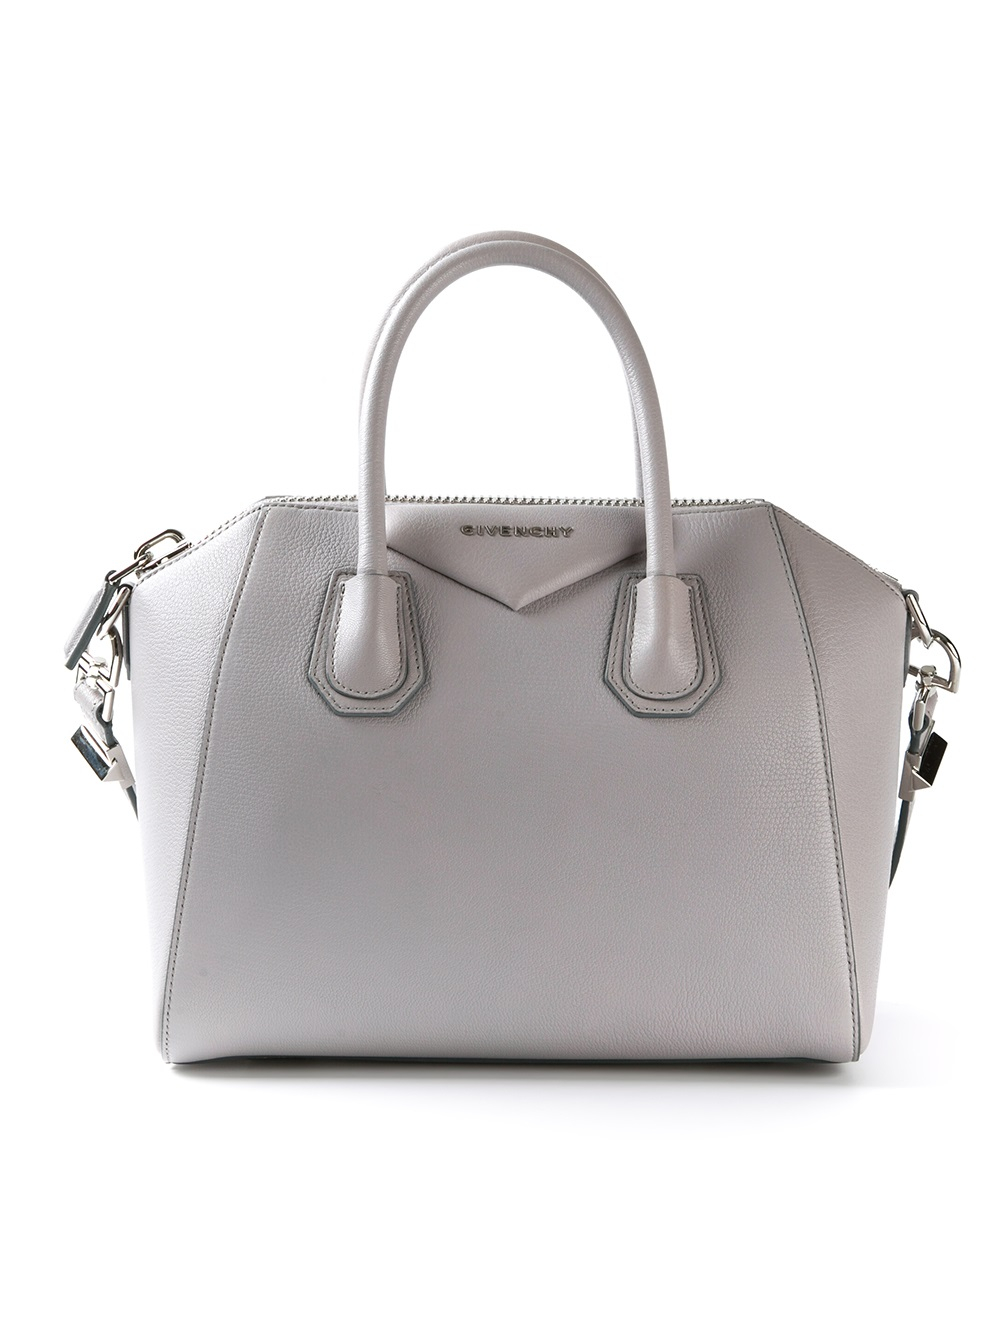 lyst givenchy antigona small tote in gray. Black Bedroom Furniture Sets. Home Design Ideas